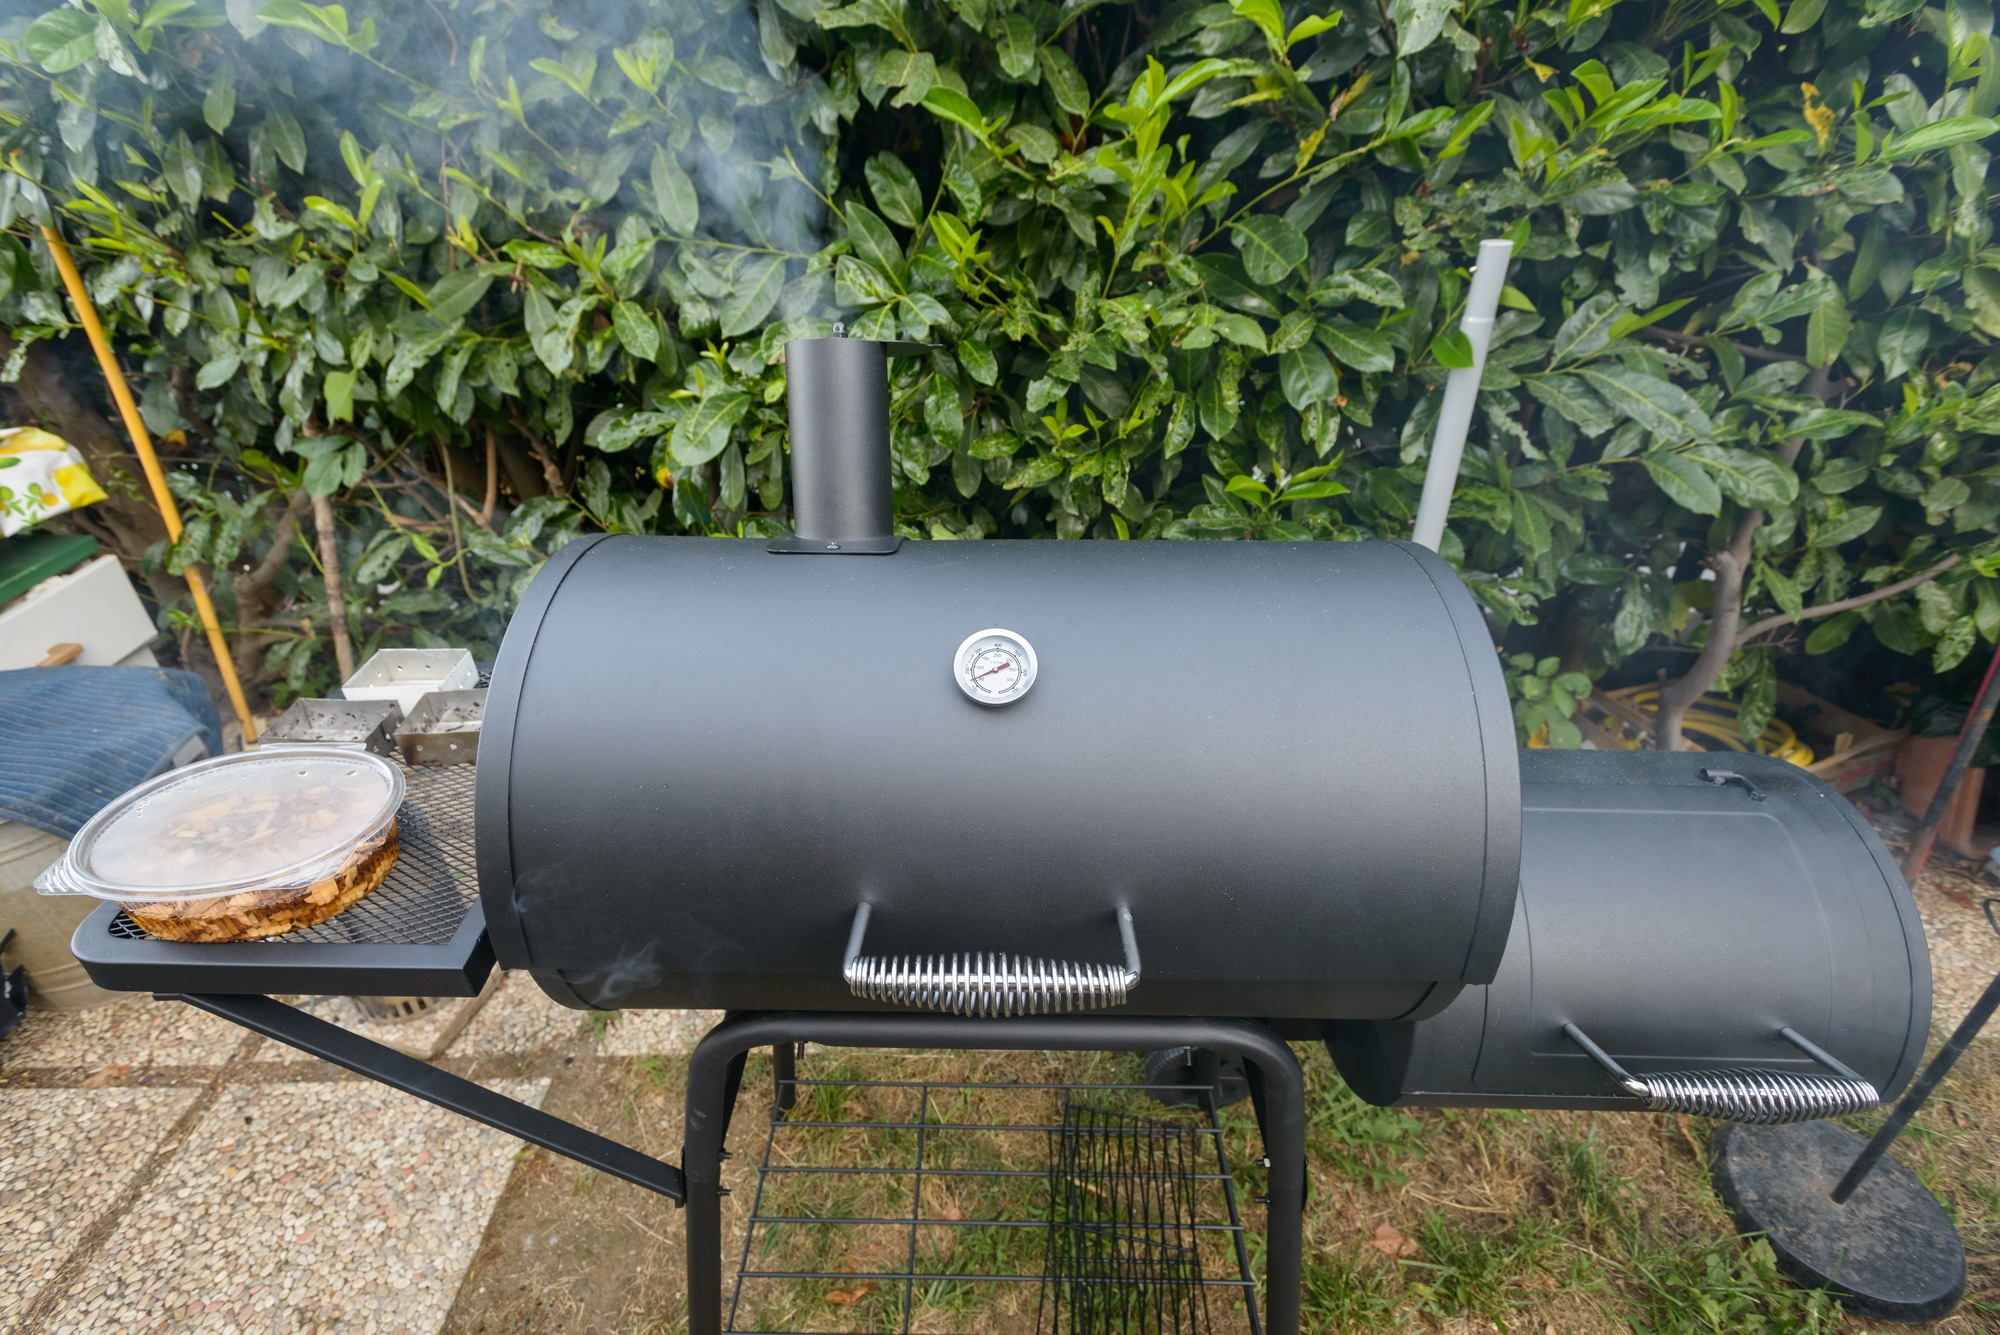 Best Bbq Smoker Reviews Uk 2019 Top 10 Compared